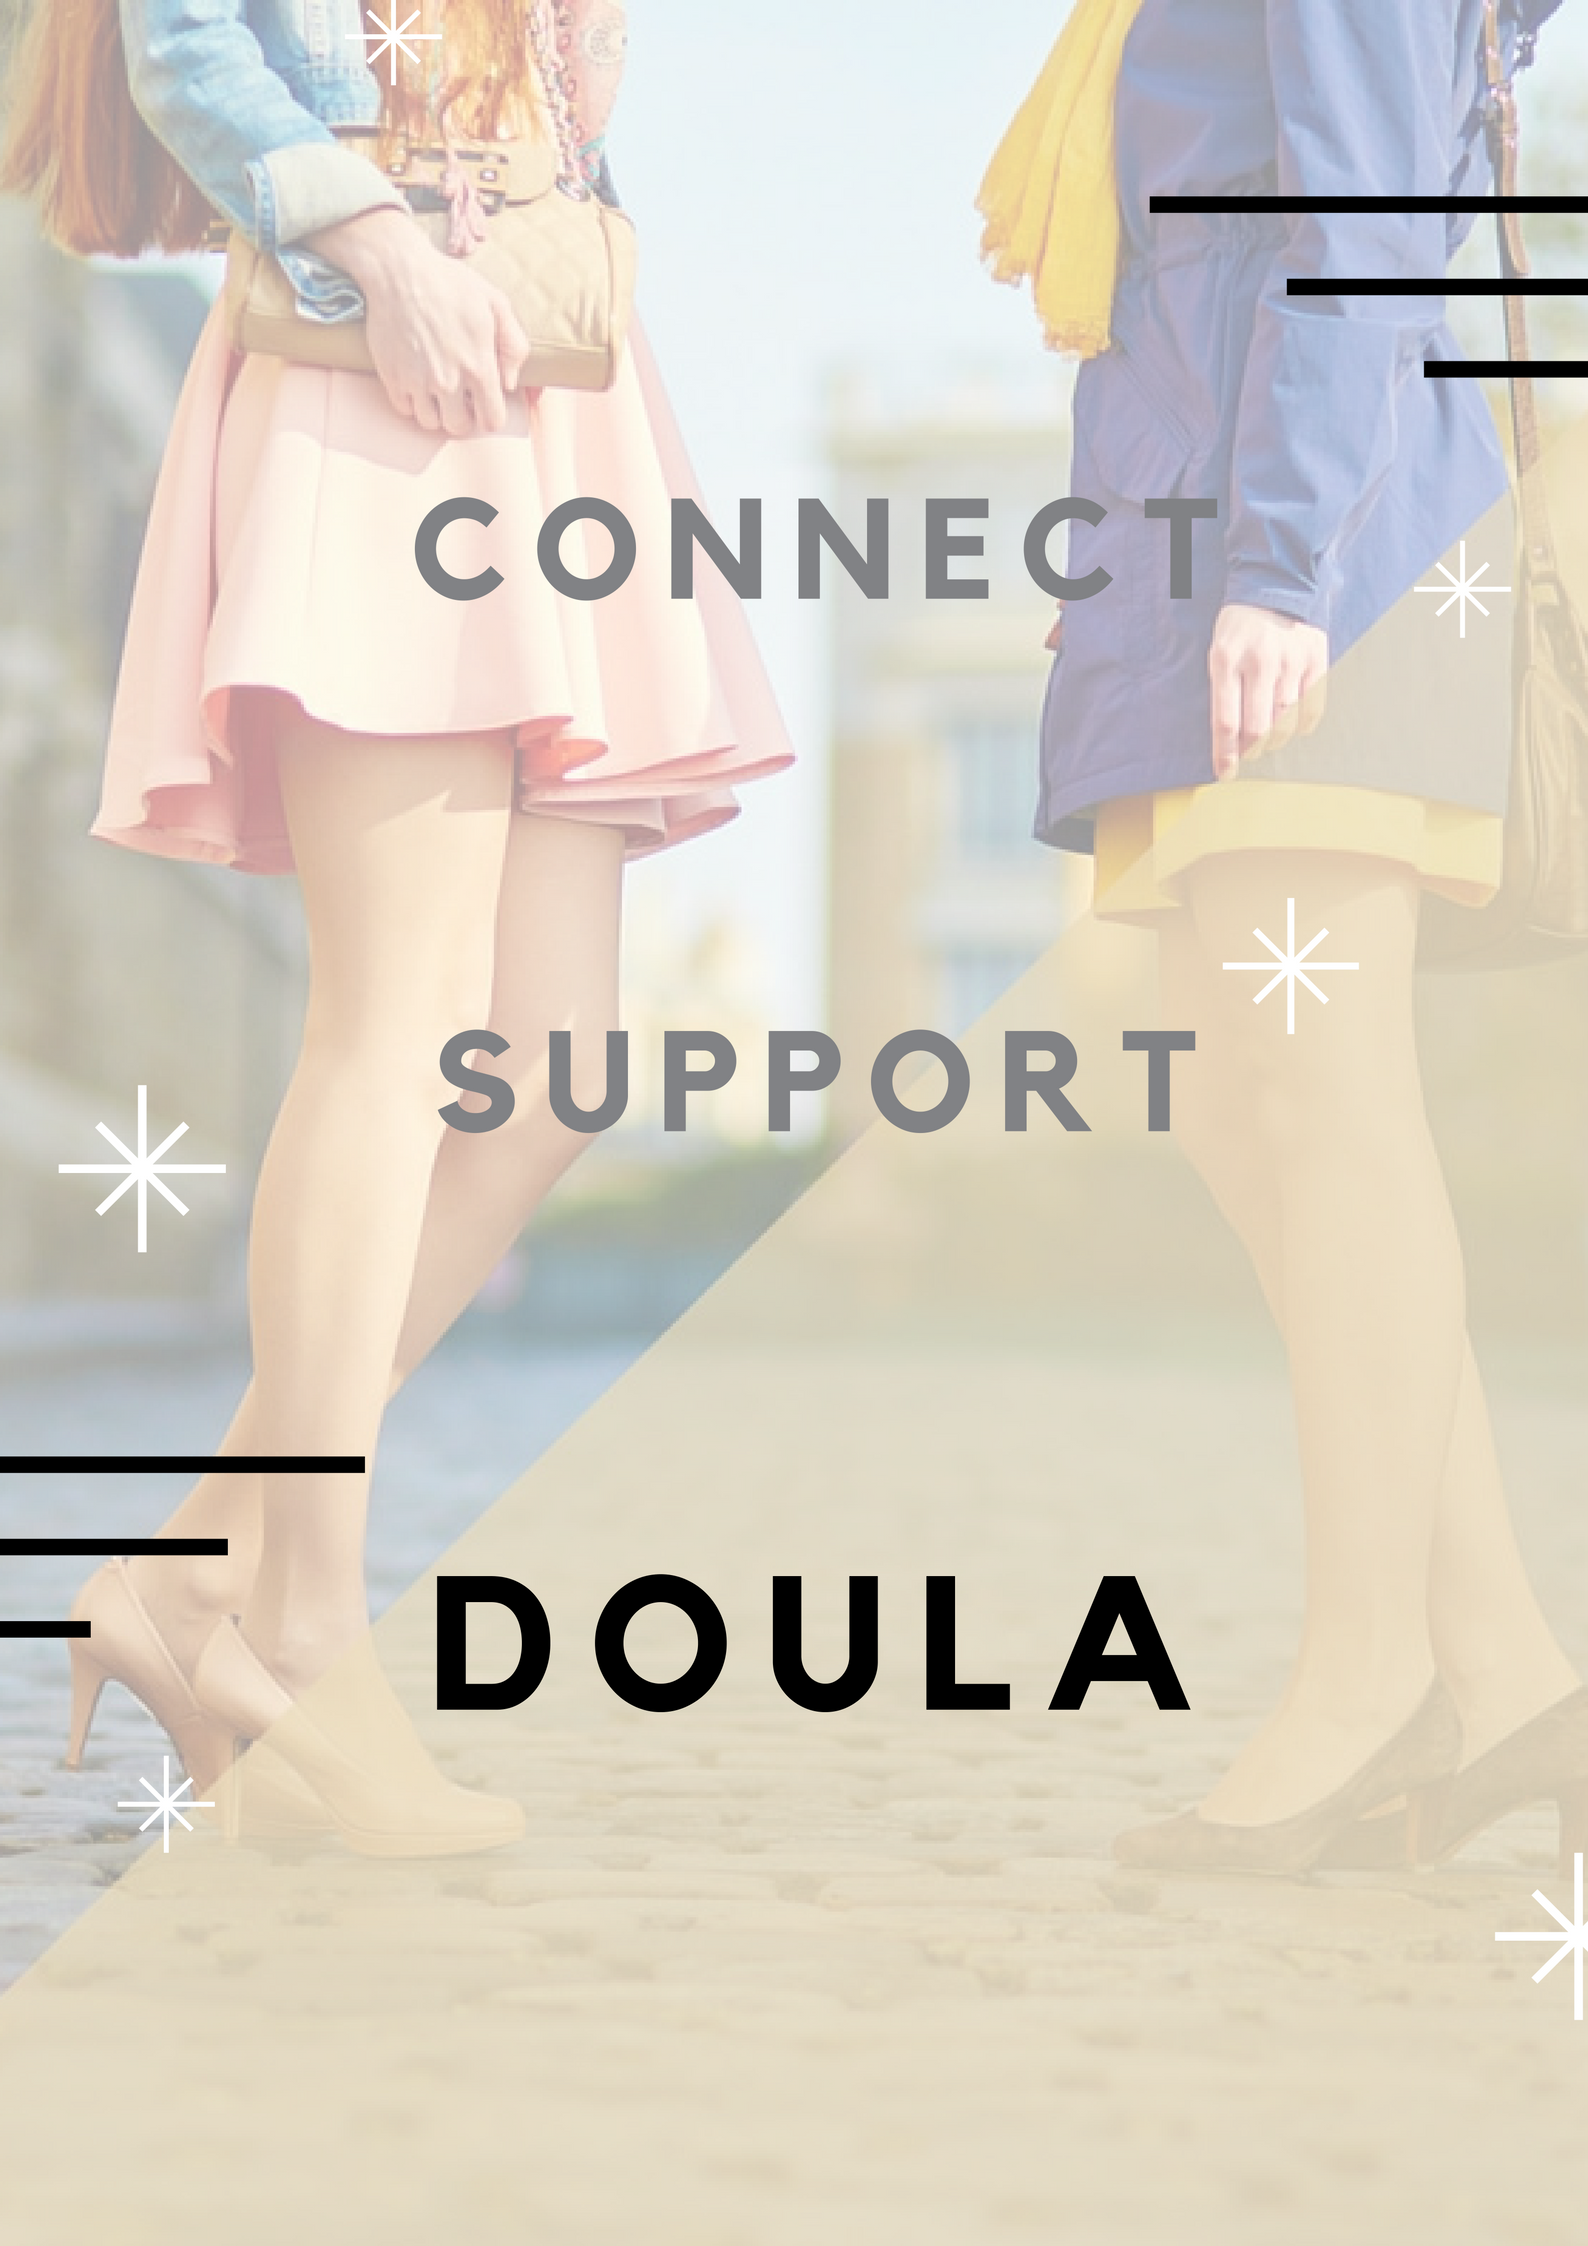 should I hire a doula? Doula cost in Colorado Springs, Denver birth support options for VBAC